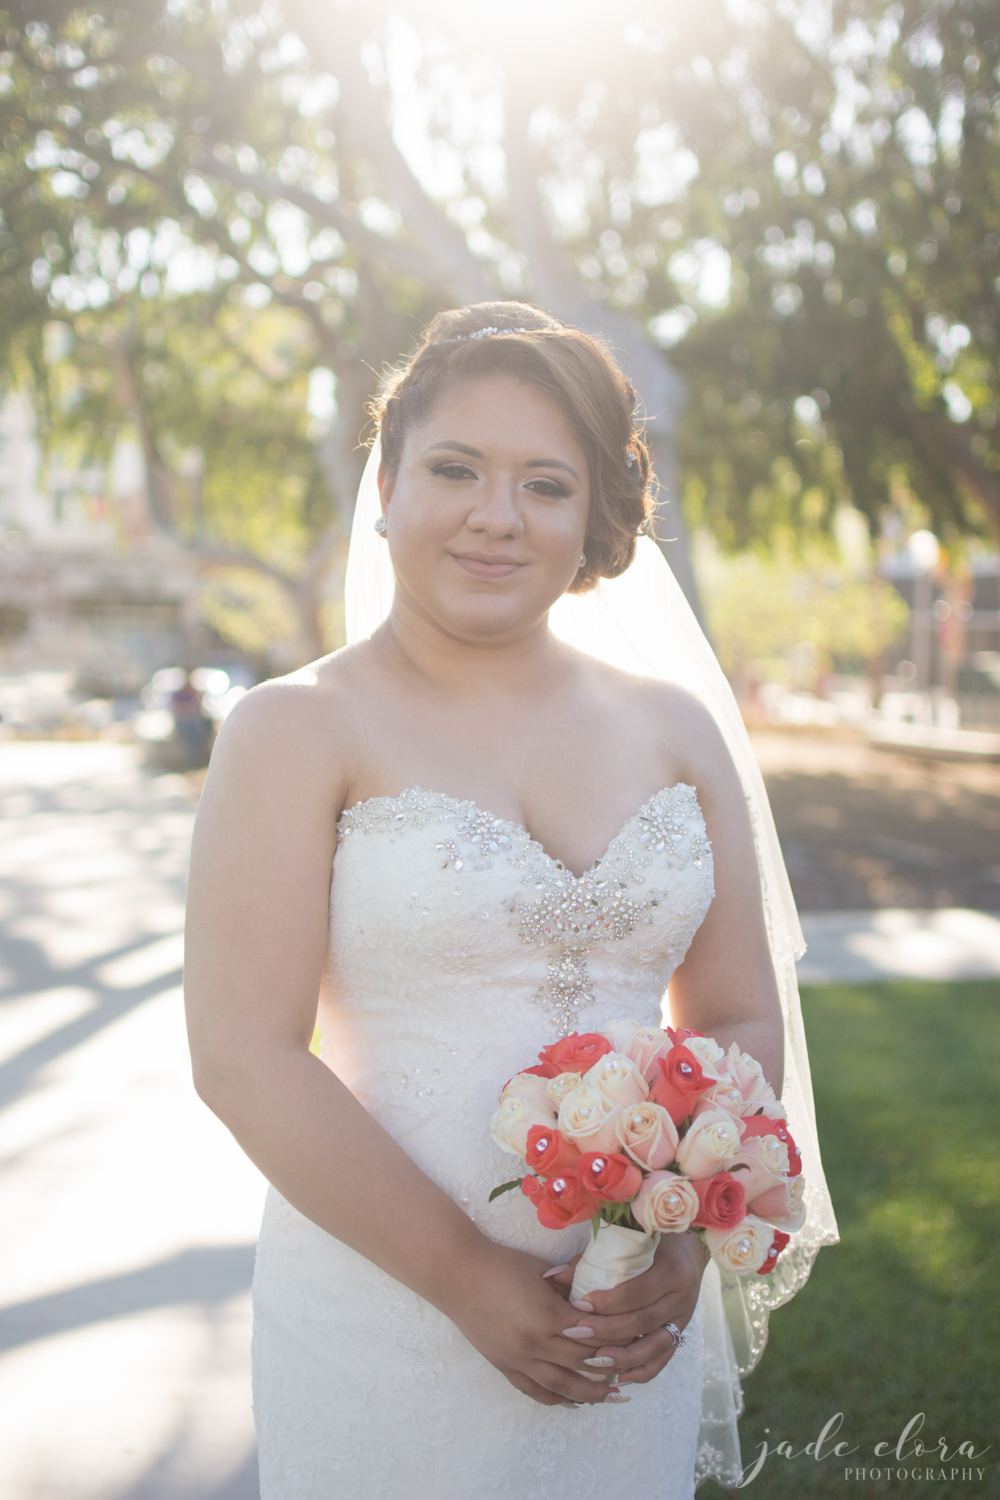 Glendale-Wedding-Photographer-Blog-Jade-Elora-Blog-MGM-19.jpg